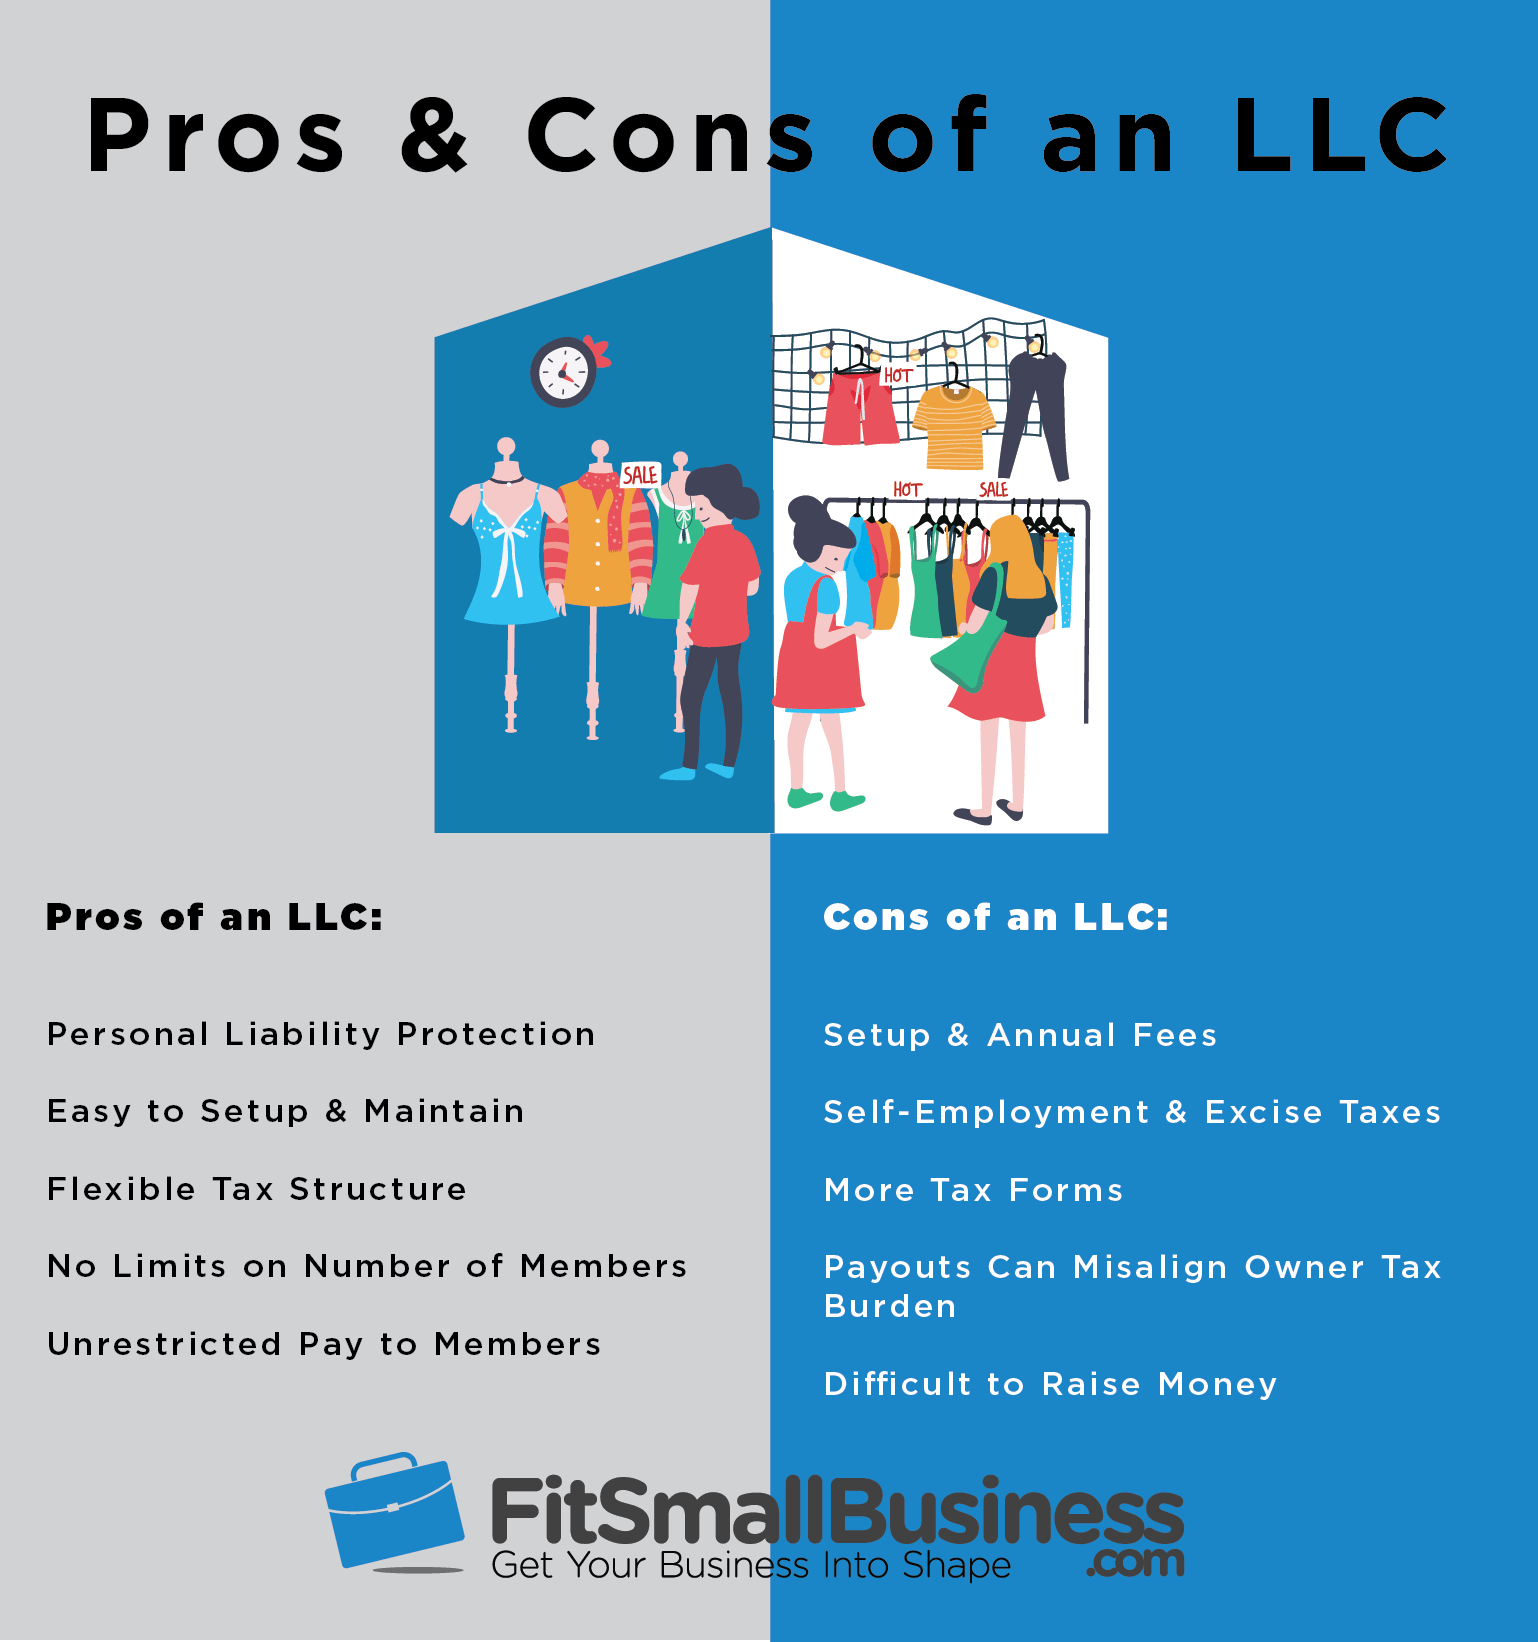 5 Pros And 5 Cons Of An Llc